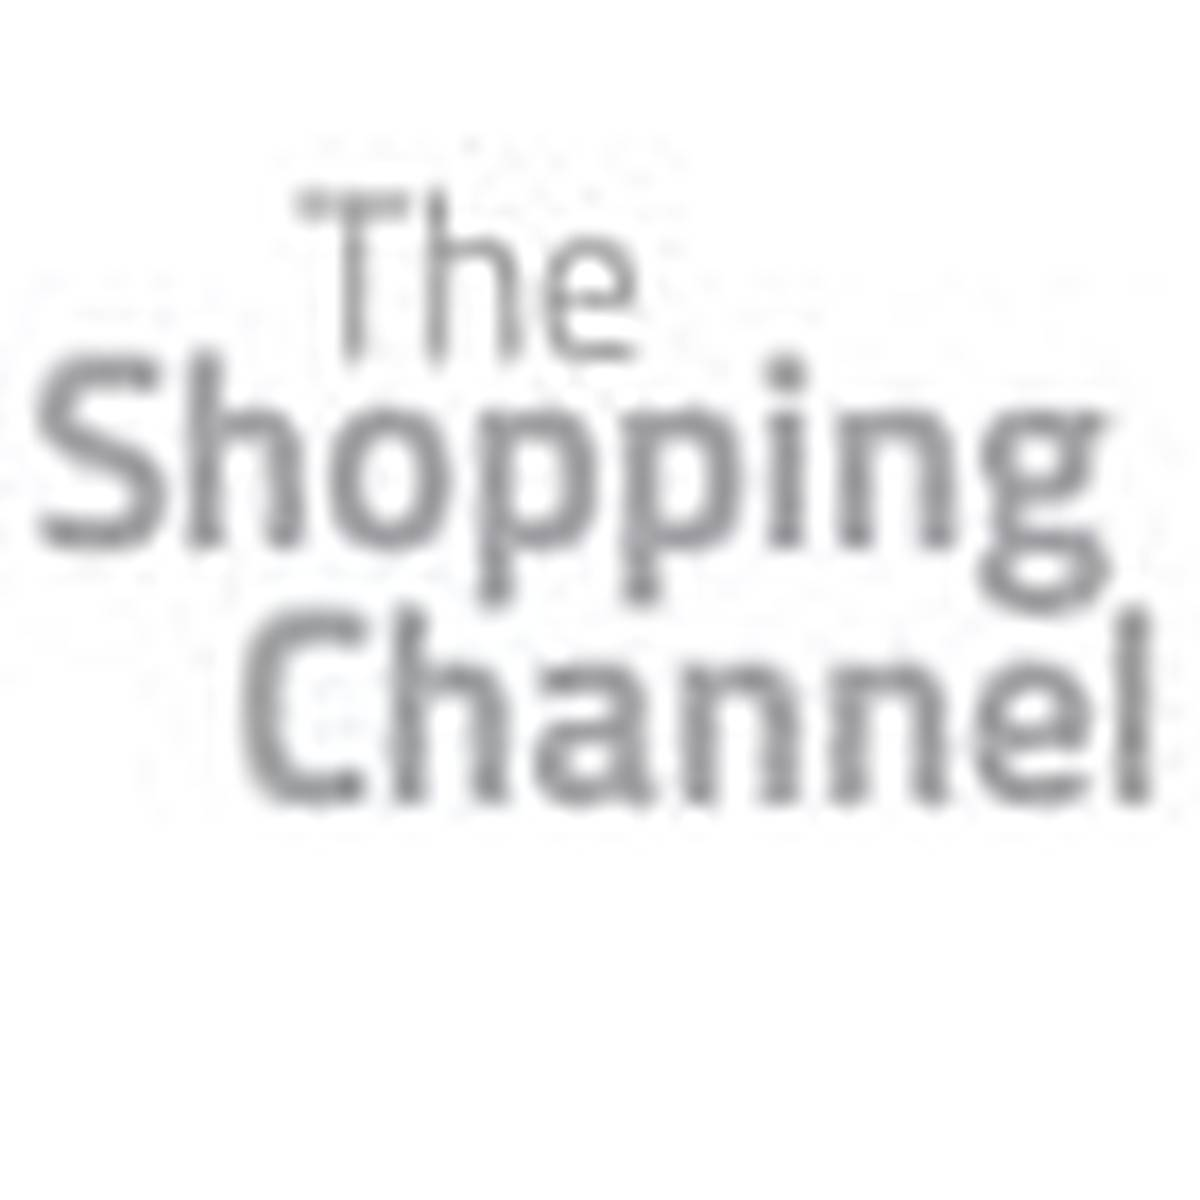 828c38b25fae Shopping Channel aims for July - NZ Herald